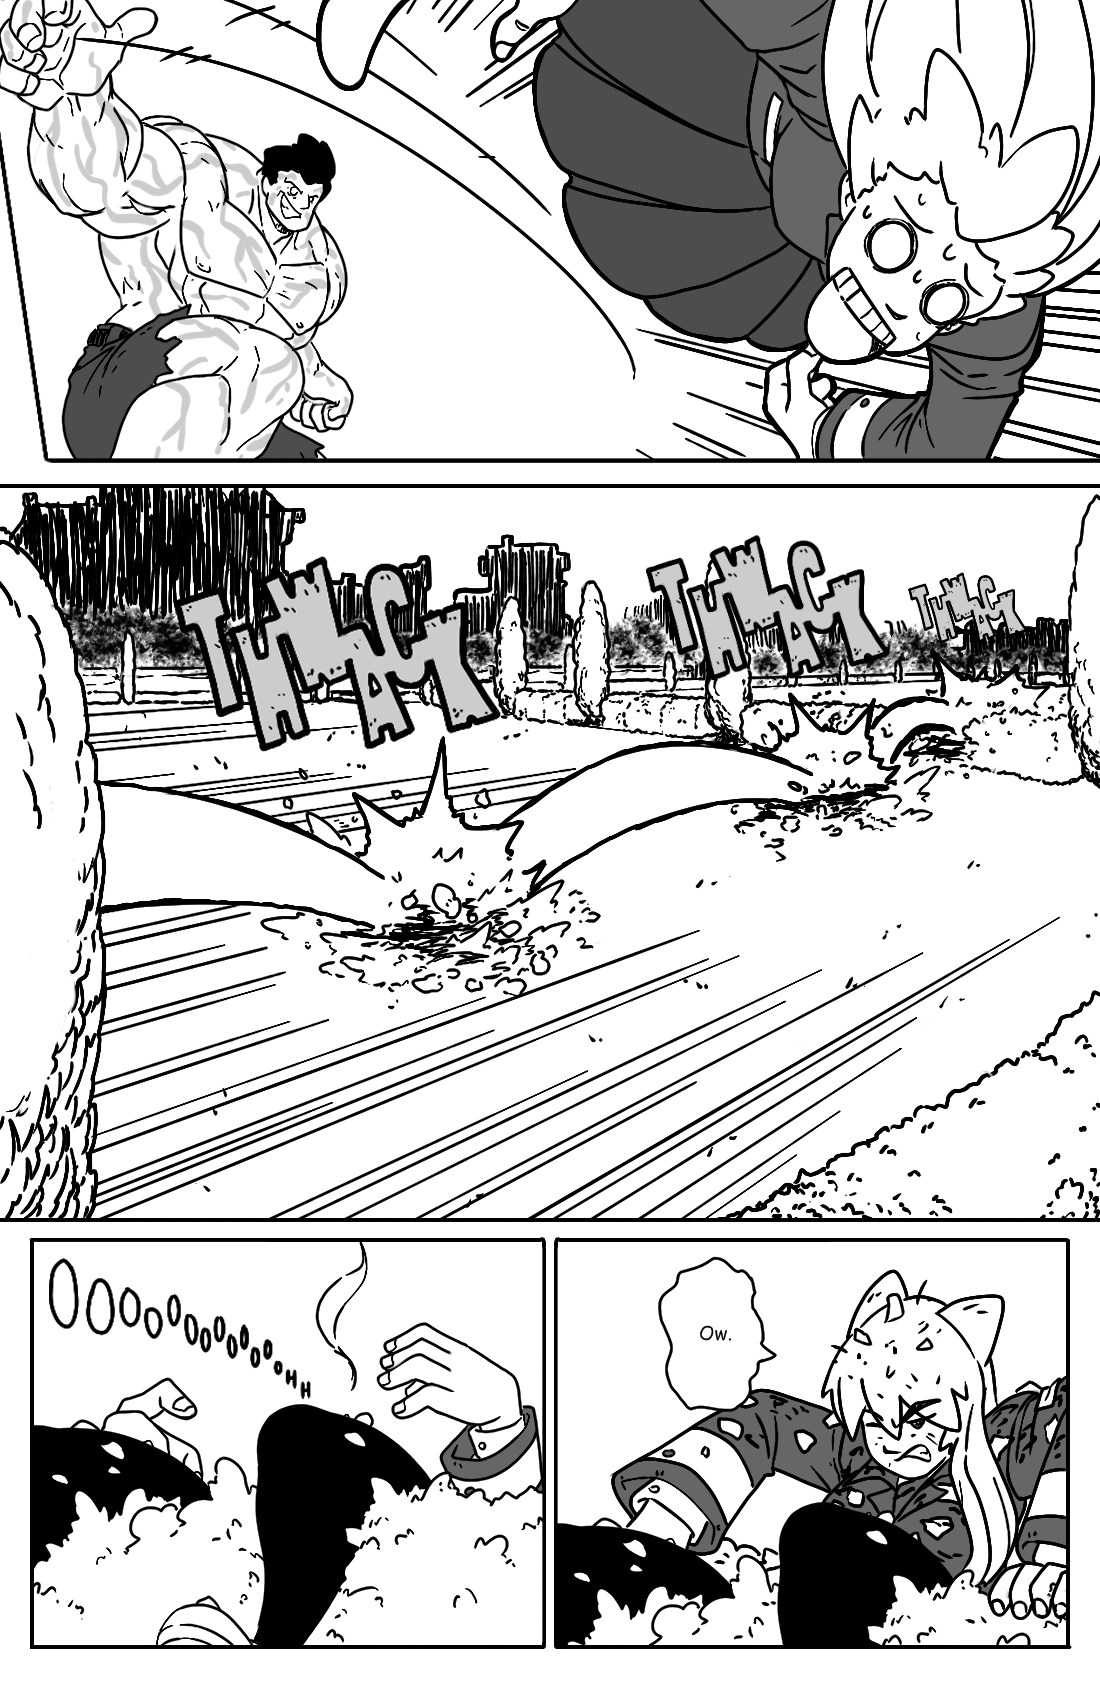 Bully Bully Part 3 pg.8